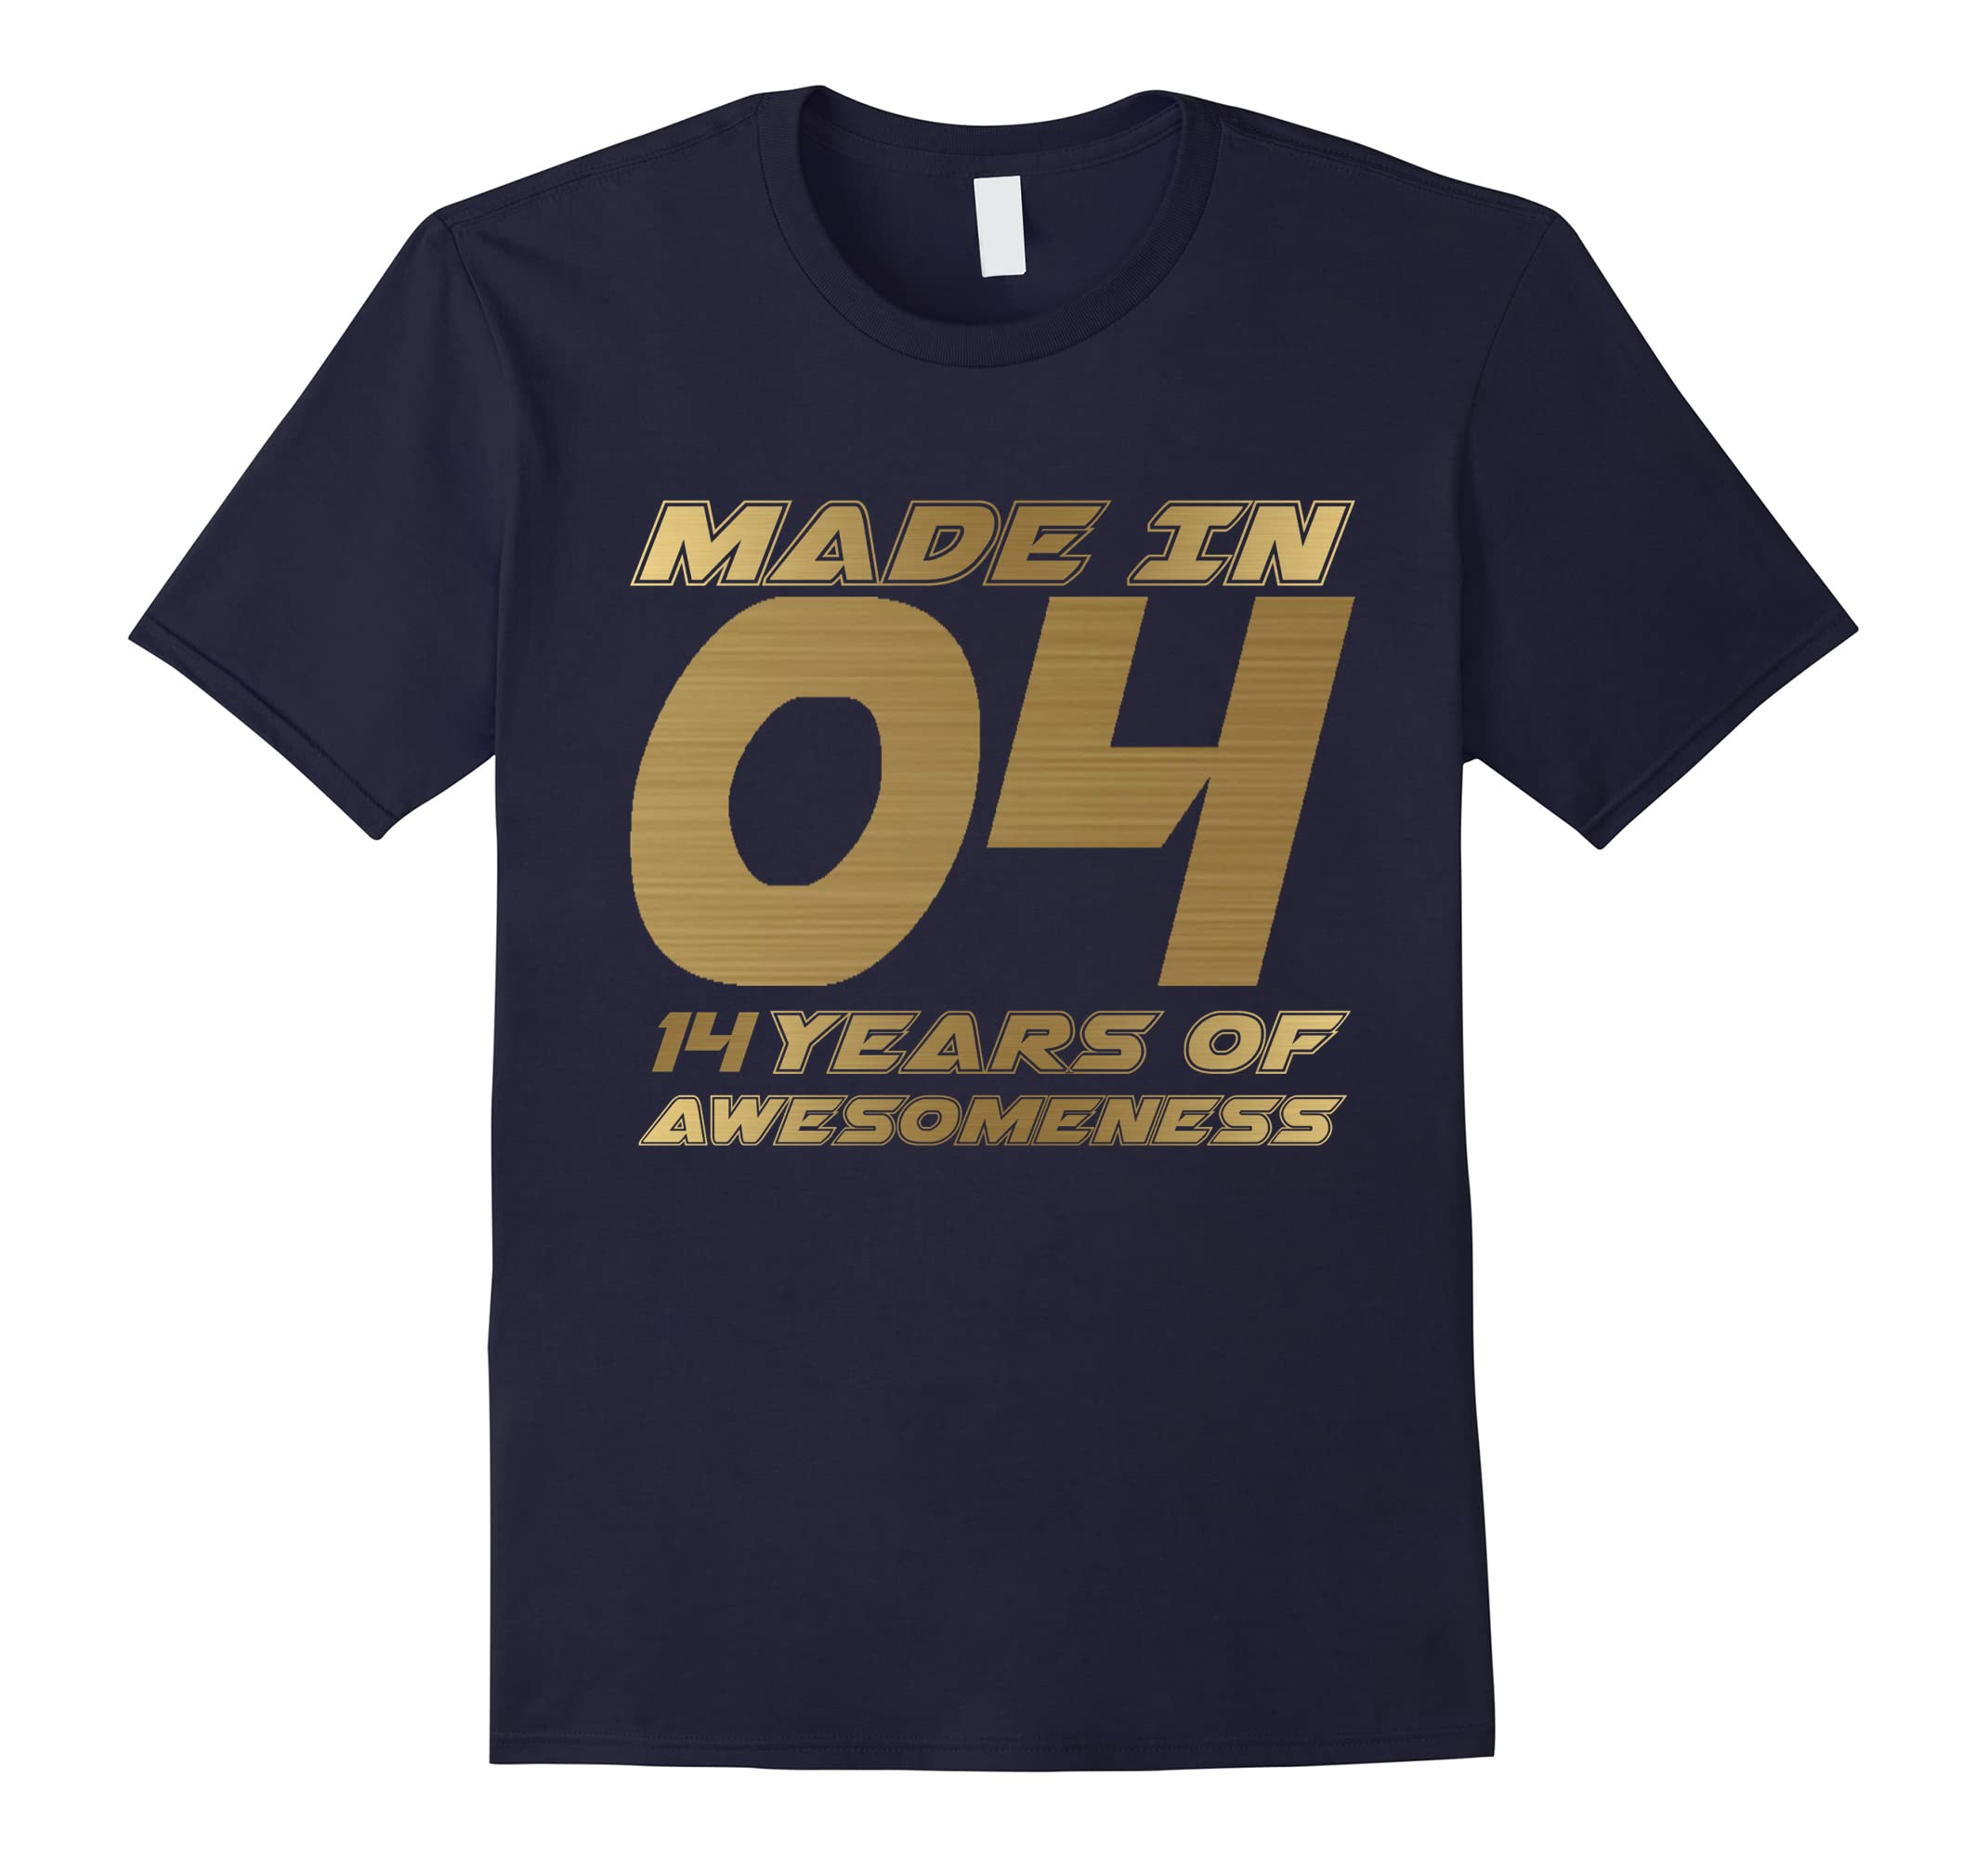 Made in 04 14 Years of Being Awesome Birthday T-Shirt Gift-ah my shirt one gift